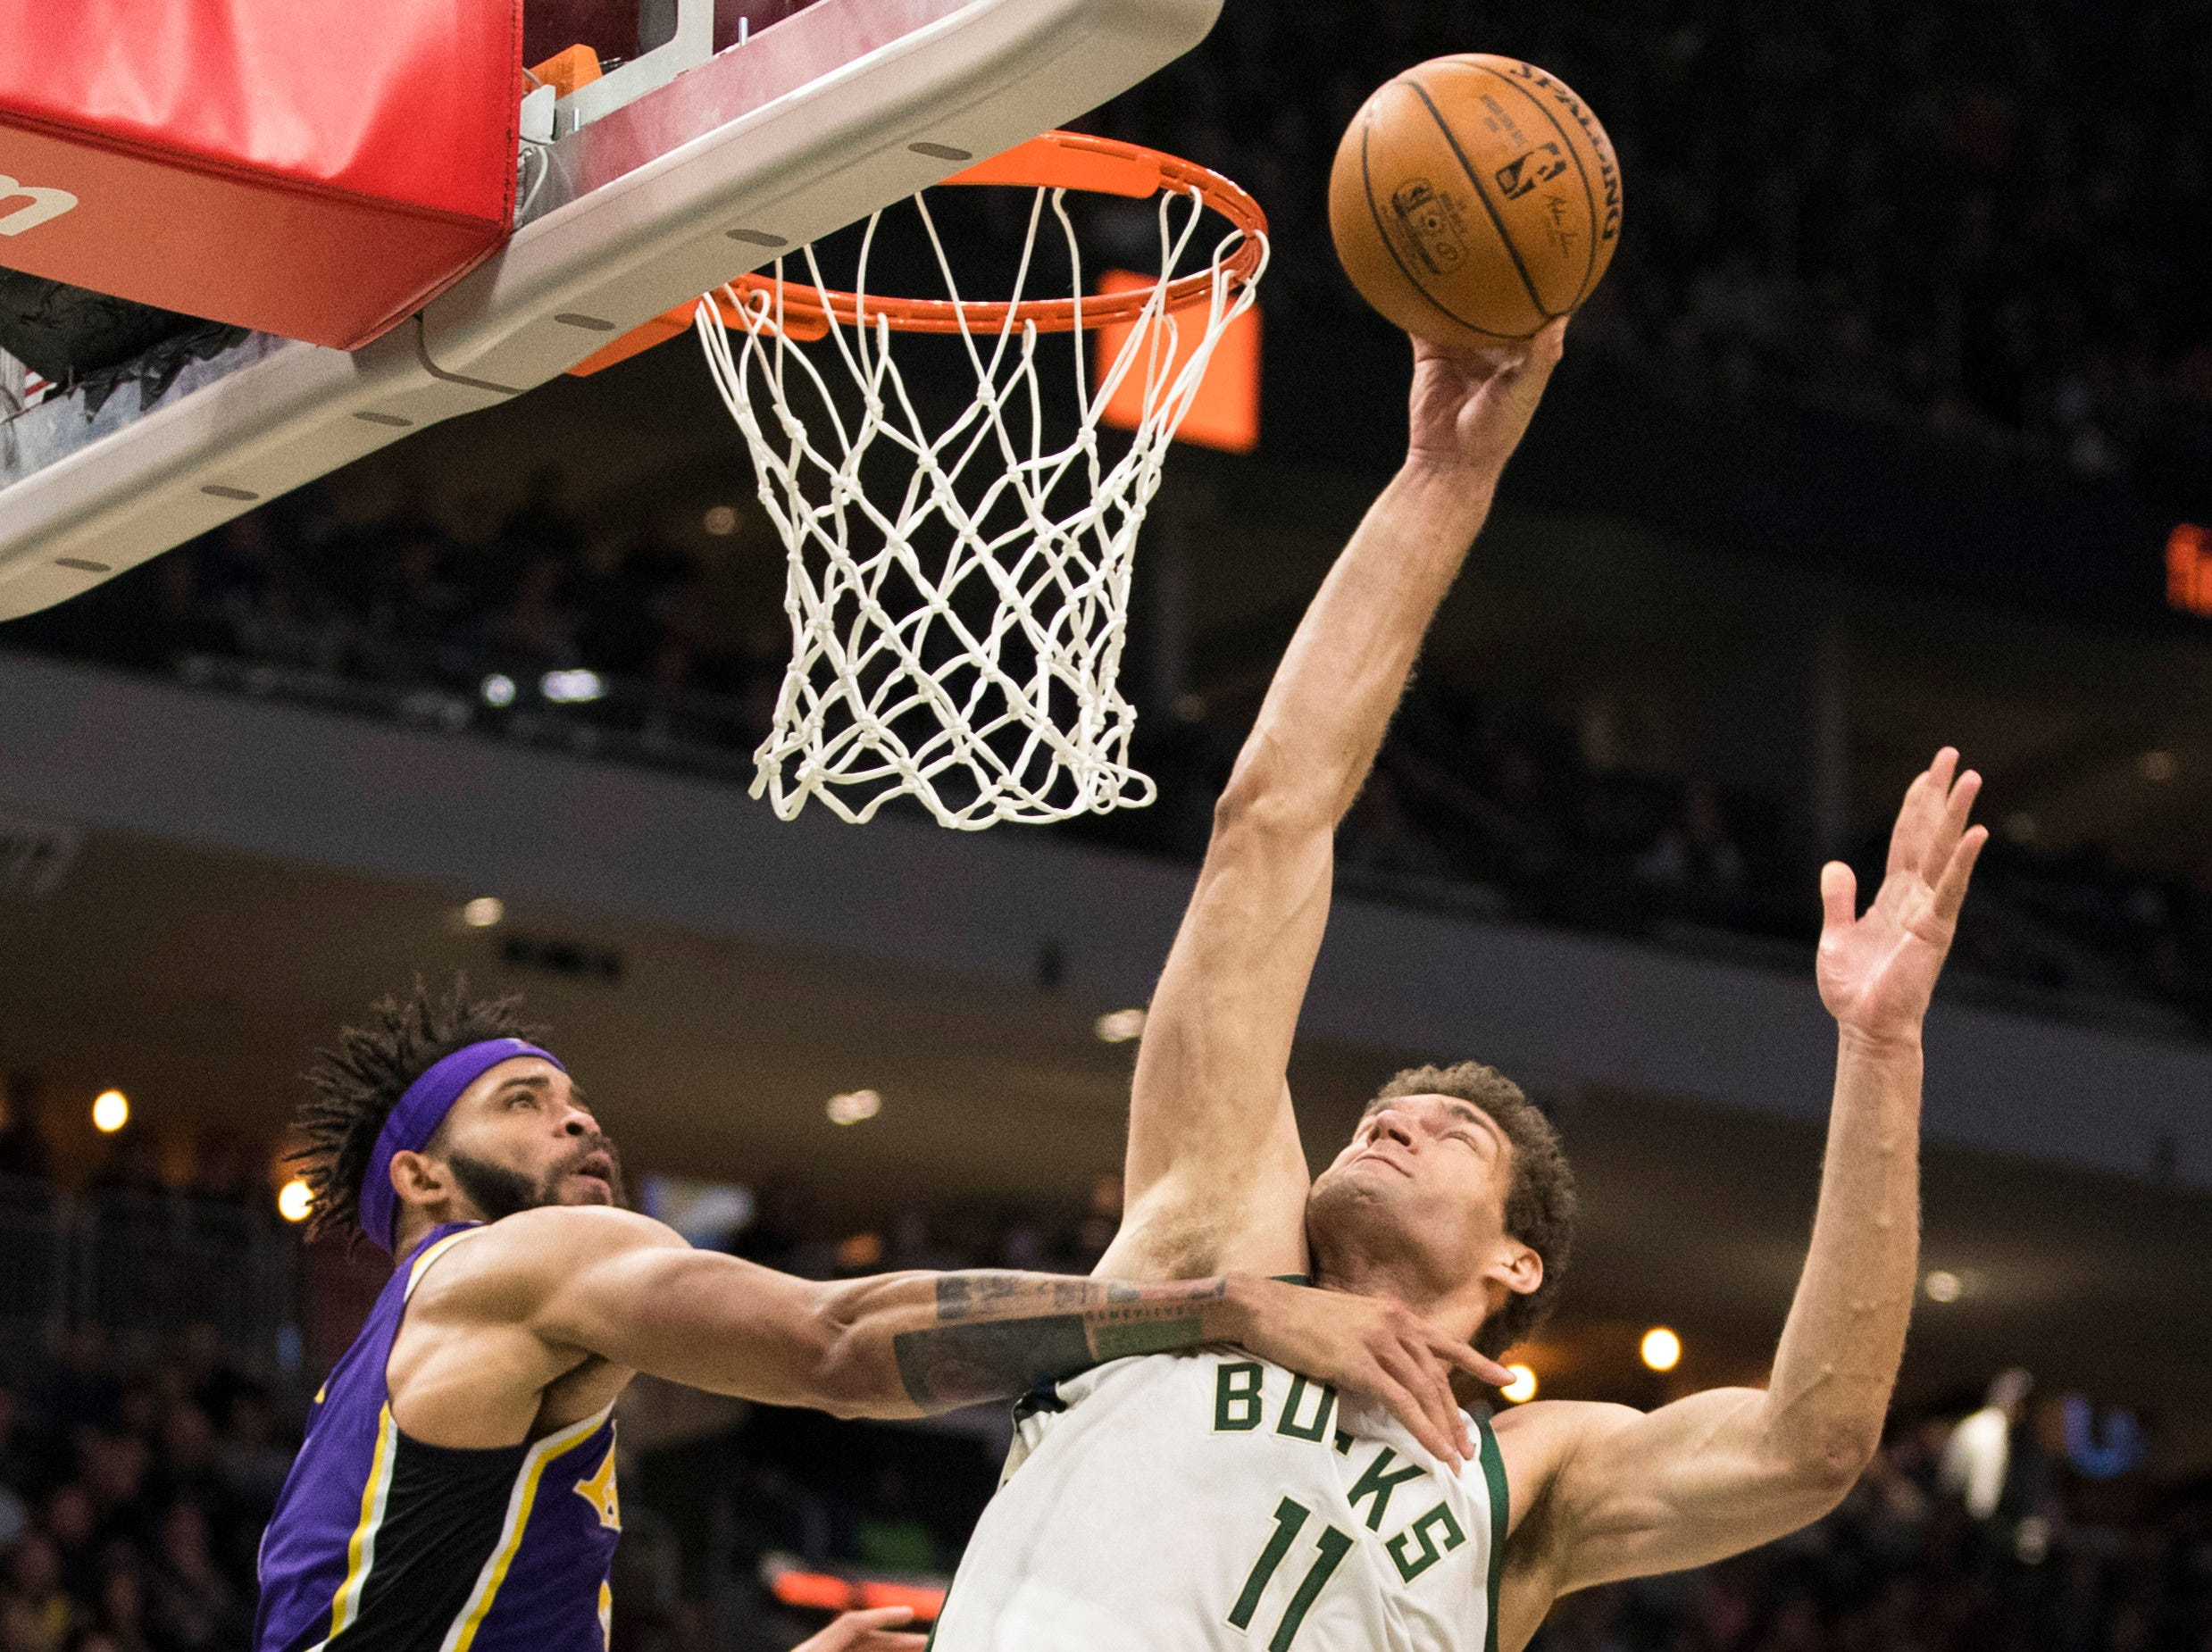 Mar 19, 2019; Milwaukee, WI, USA; Milwaukee Bucks center Brook Lopez (11) shoots the ball over Los Angeles Lakers guard Reggie Bullock (35) during the fourth quarter at Fiserv Forum. Mandatory Credit: Jeff Hanisch-USA TODAY Sports